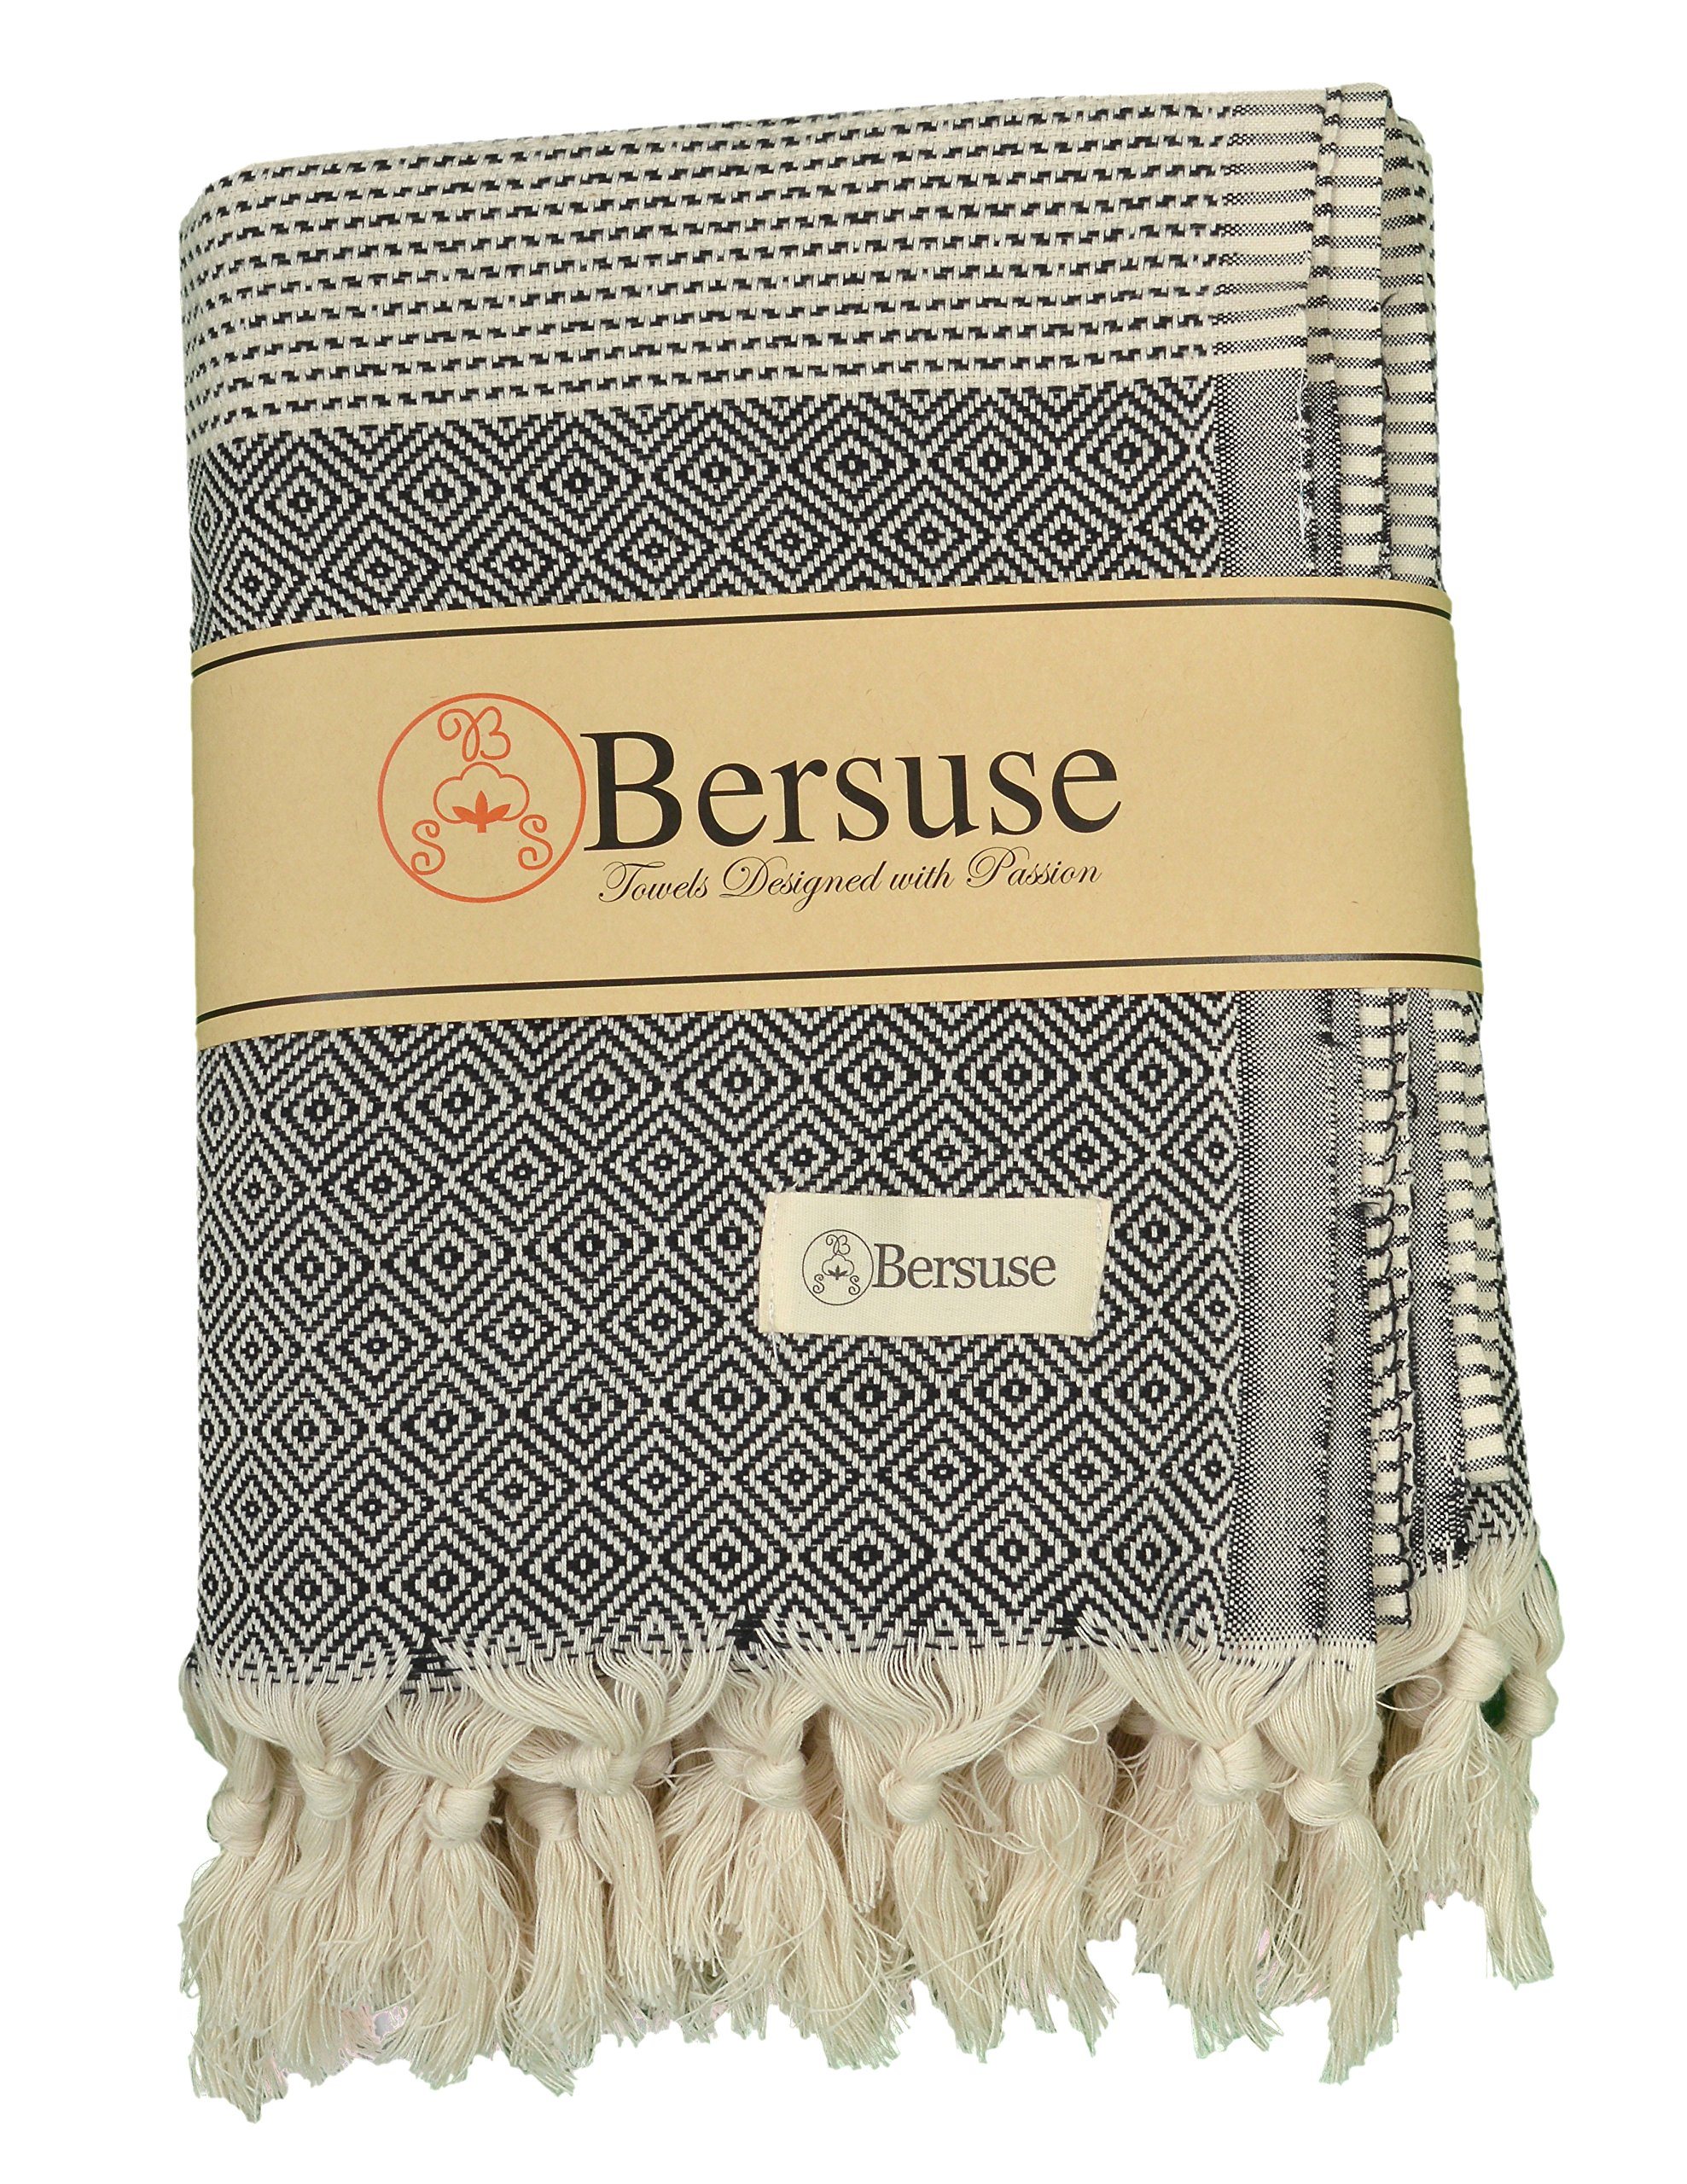 Bersuse 100% Cotton Hierapolis XL Blanket Turkish Towel, 60X95 Inches, Black - LARGE AND STYLISH: Offers soft, relaxing comfortability for indoor/outdoor, home, beach, camping, picnic, or travel. Add gorgeous value and elegance to a couch, chair or bed by choosing a color that matches your bedroom or living room decor. ABSORBENT & GENTLE ON SKIN: Our linen flat woven towels dry you off quickly. They are ultra soft and great for infants, baby care, toddlers and adults with sensitive skin. QUICK DRYING: Dries way more quickly both by air and tumble drier. They are anti-microbial-unlike fluffy cotton towels- so they do not get smelly. - blankets-throws, bedroom-sheets-comforters, bedroom - A1J5SeO fQL -